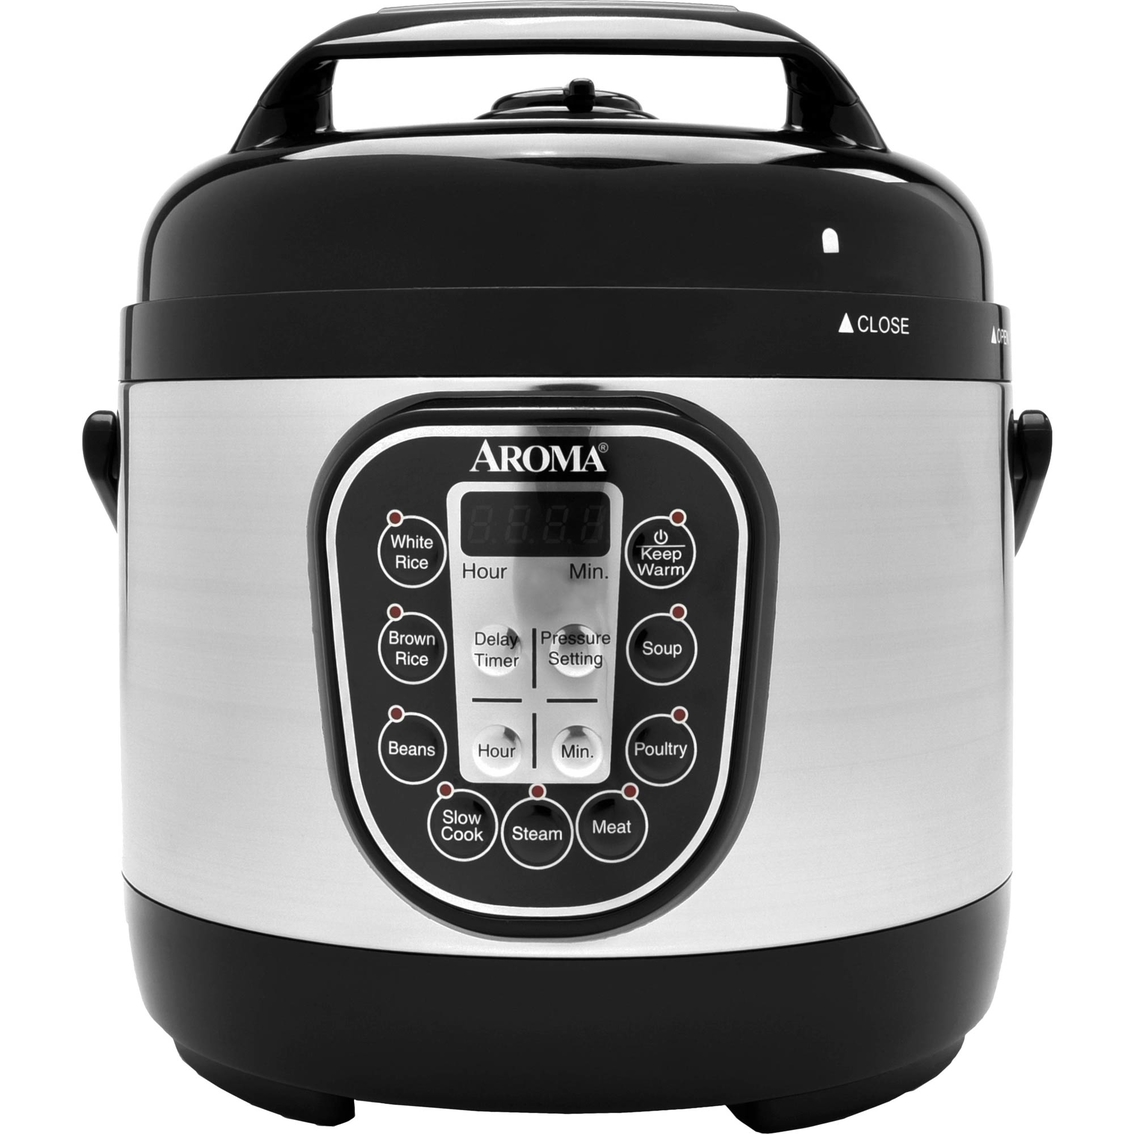 Aroma Turbo Rice Digital Pressure Cooker | Rice Cookers | Home ...